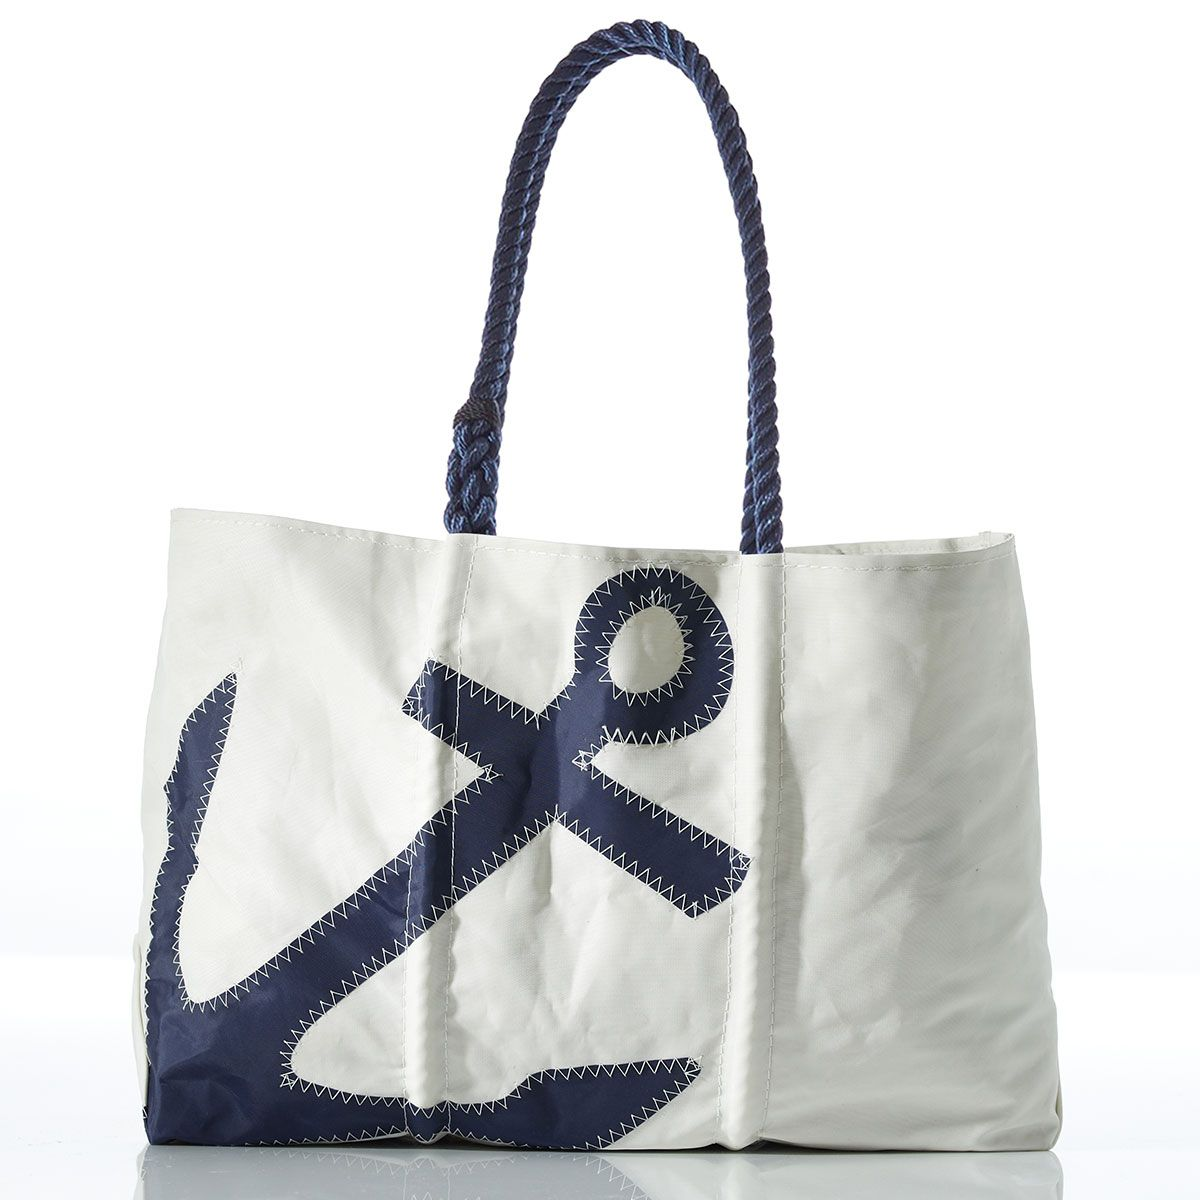 Navy Anchor Tote Bags Tote Bags For College